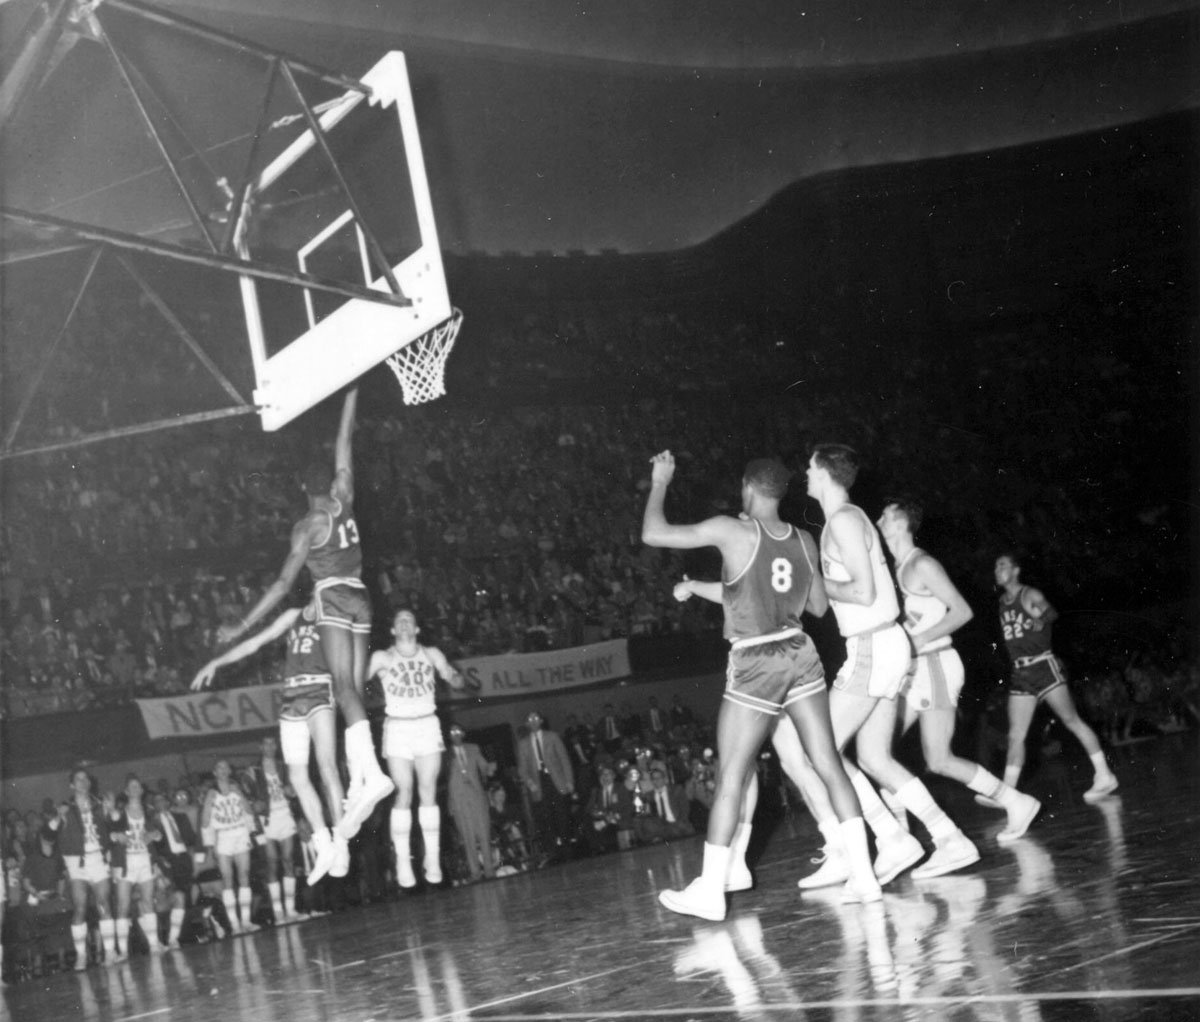 The final seconds of the third overtime in the 1957 final between North Carolina and Kansas. Wilt Chamberlain (13) has just rejected Tommy Kearns' (40) jumper. (Photo via KU University Archives)